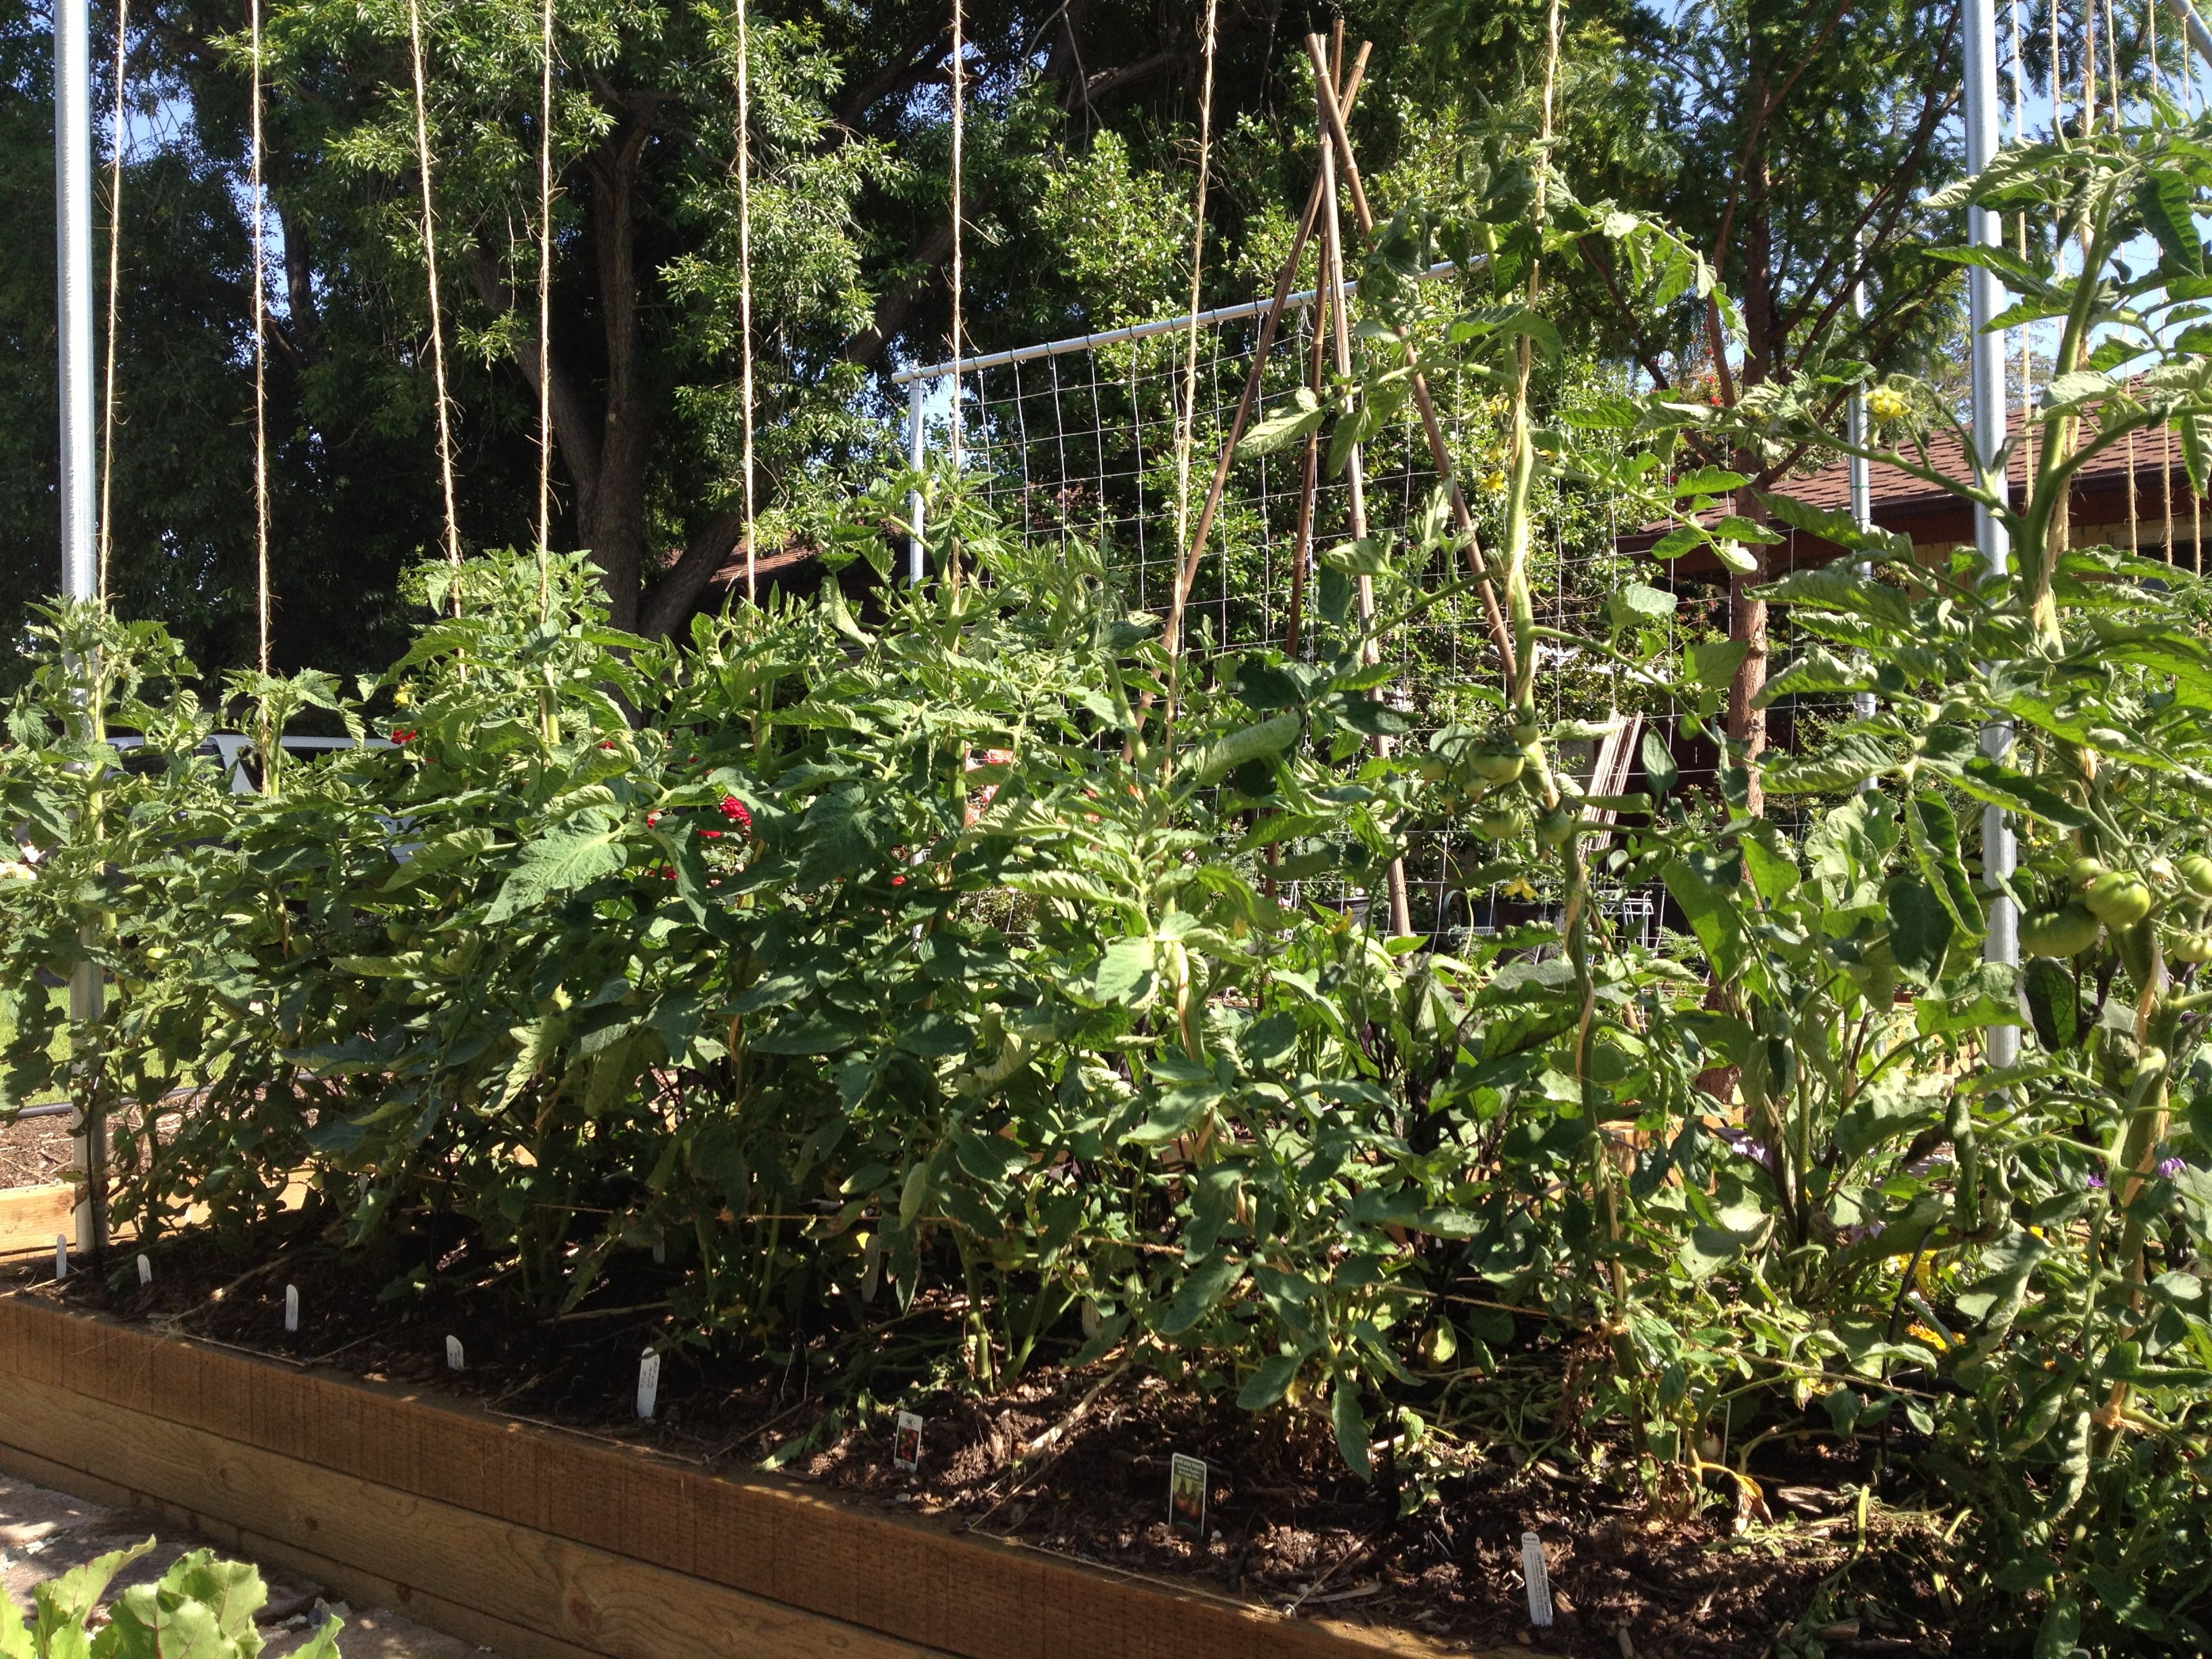 Square Foot Gardening: Tomato Vines Continue To Be Trained Up The Trellis  (05/